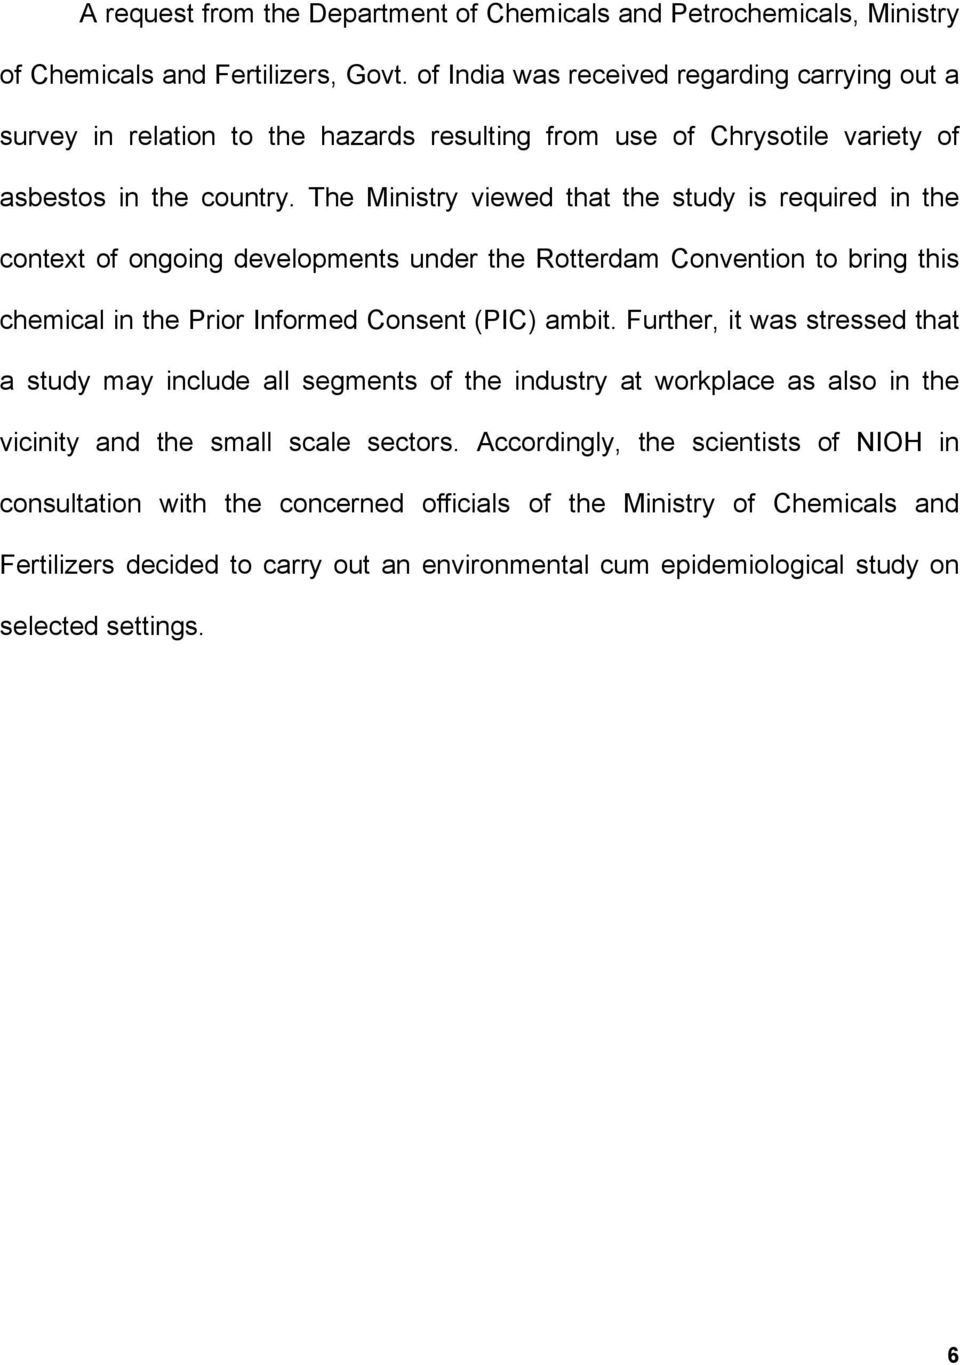 The Ministry viewed that the study is required in the context of ongoing developments under the Rotterdam Convention to bring this chemical in the Prior Informed Consent (PIC) ambit.